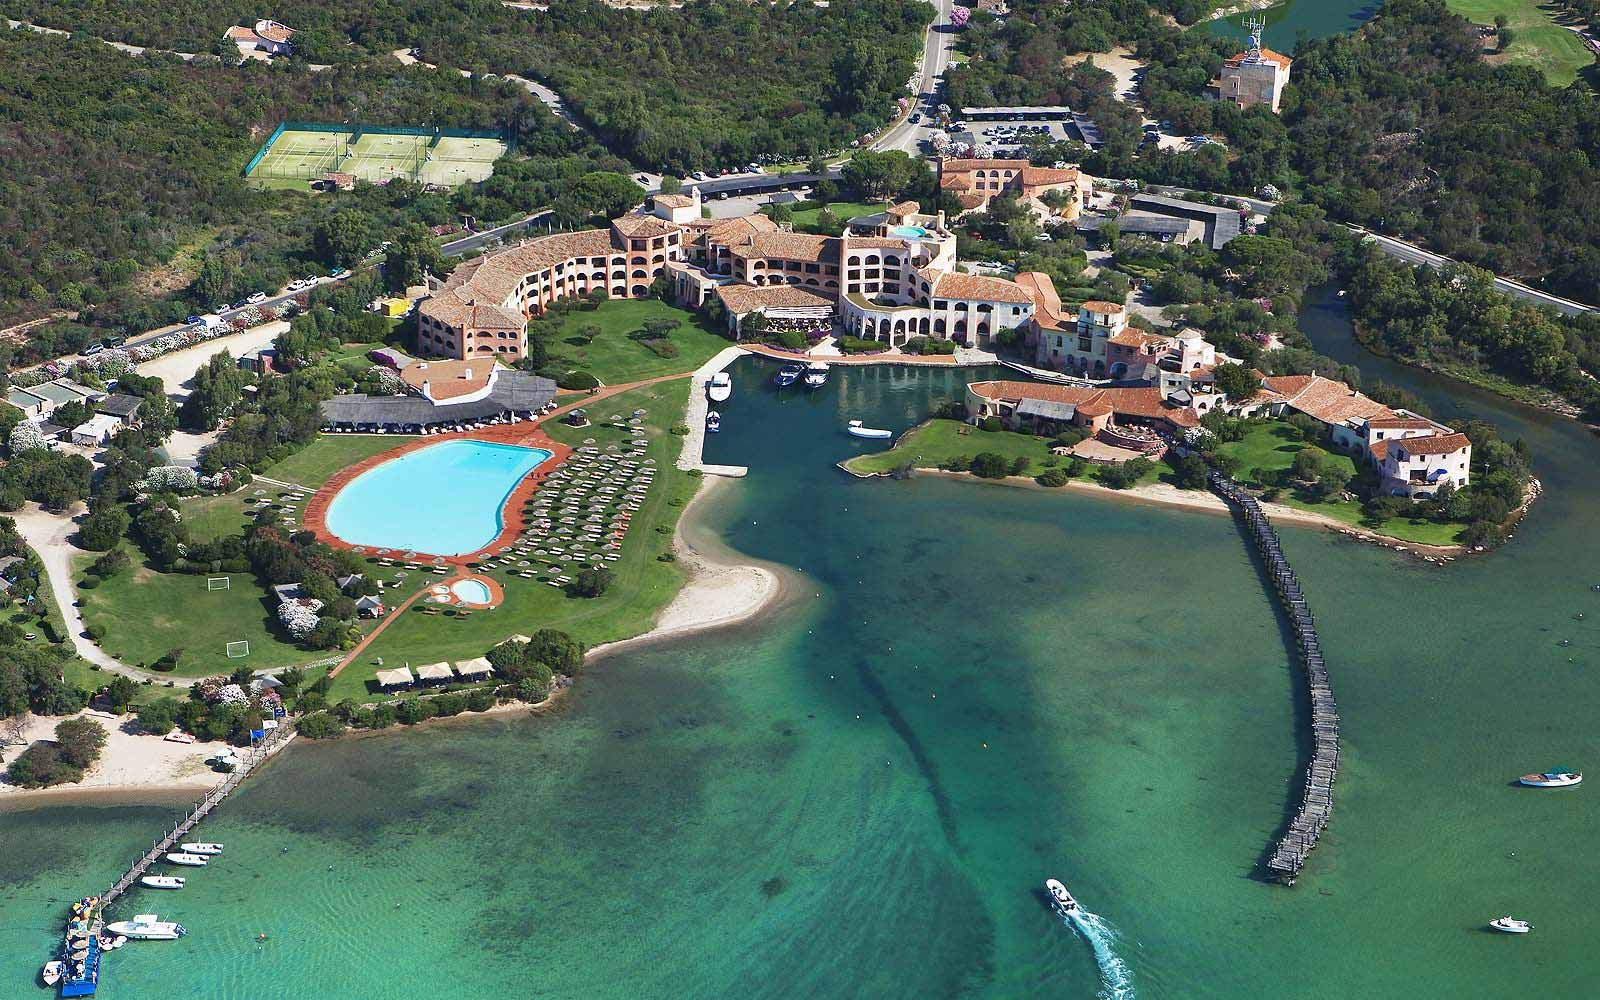 Panoramic view of the Hotel Cala di Volpe